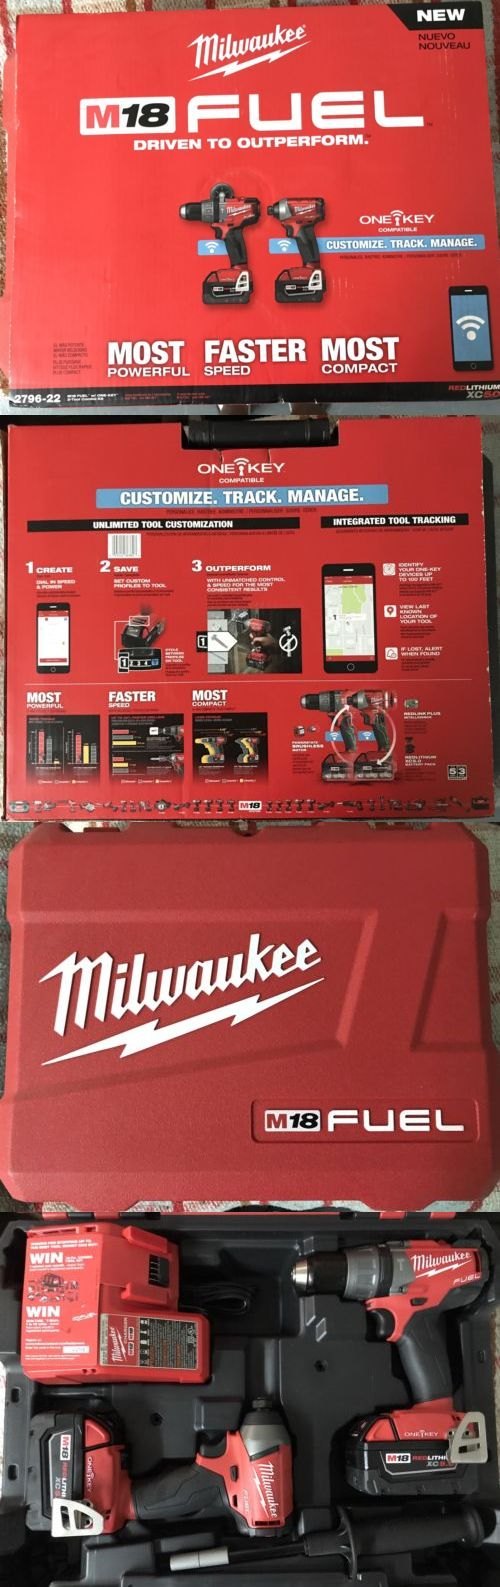 Combination Sets 177000: Milwaukee M18 Fuel 2796-22 2-Tool Impact Driver Hammer Drill Combo Kit One Key -> BUY IT NOW ONLY: $289.99 on eBay!